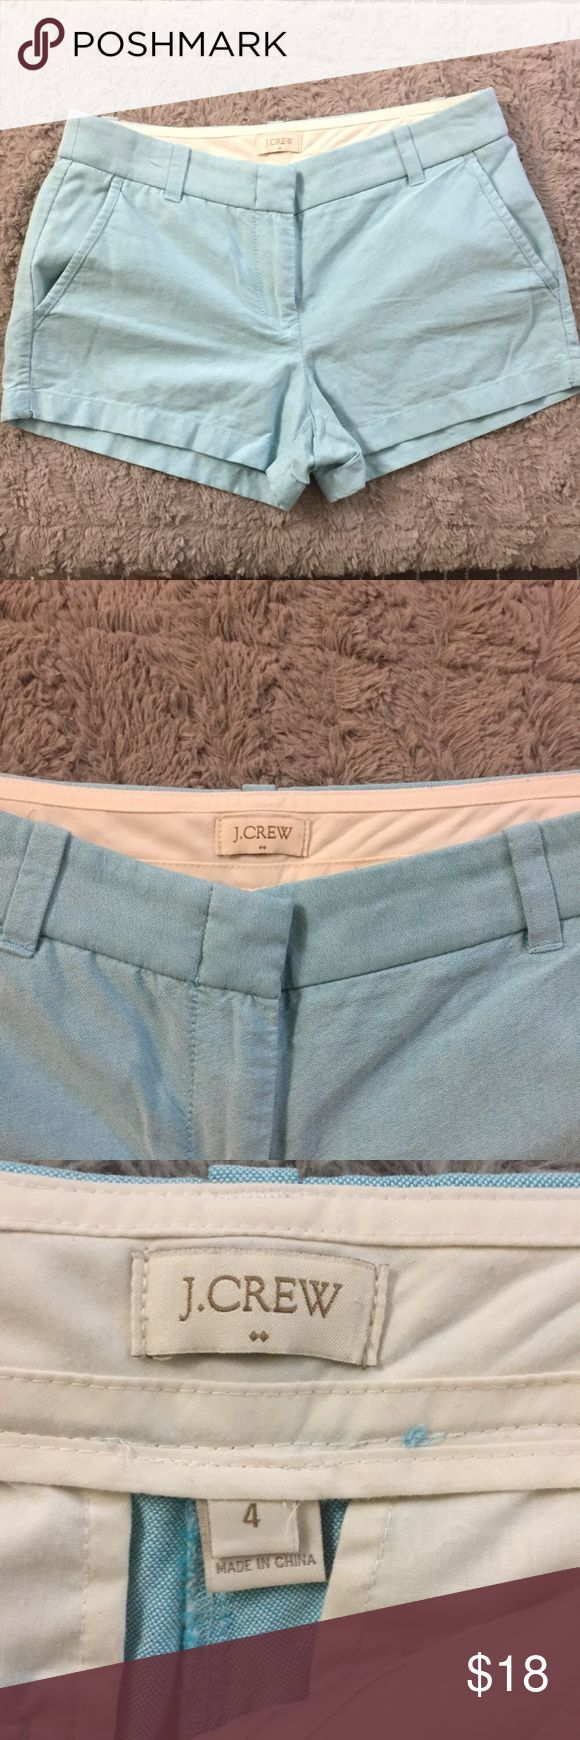 "J Crew aqua blue light 4"" chino shorts for women In excellent condition. No flaws or imperfections. Little to no wears. 3"" inseams. Neutral Light color allows easy to style with so many shirts and tops. Ask if have any questions. J. Crew Shorts"